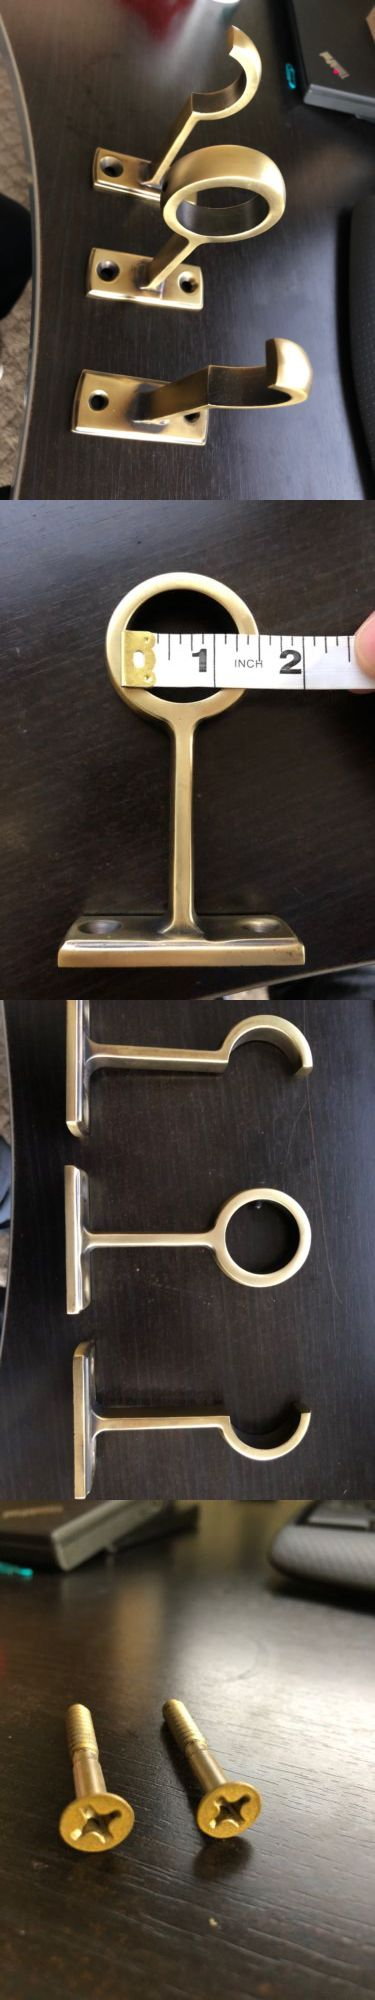 Curtain Rods And Finials 103459 Restoration Hardware Curtain Rod